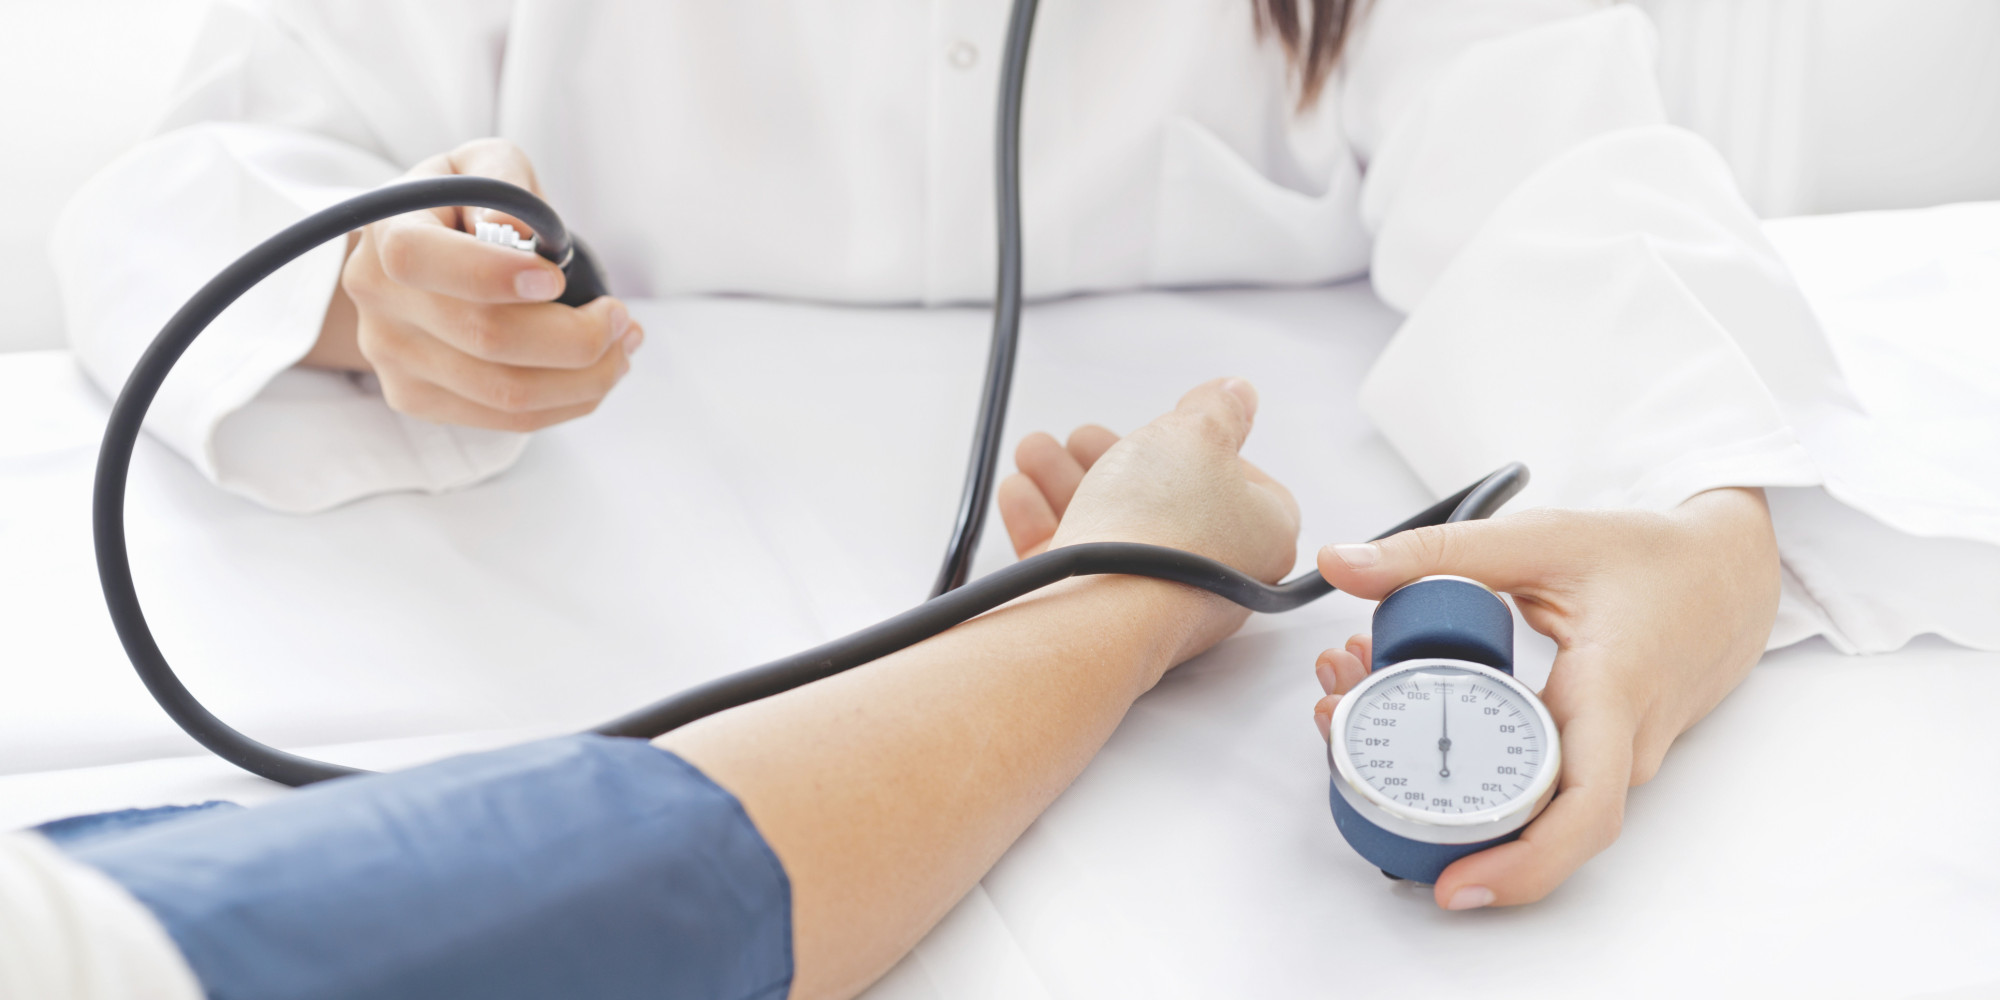 http://www.huffingtonpost.com/2015/01/14/causes-of-high-blood-pressure-surprising-_n_6445366.html